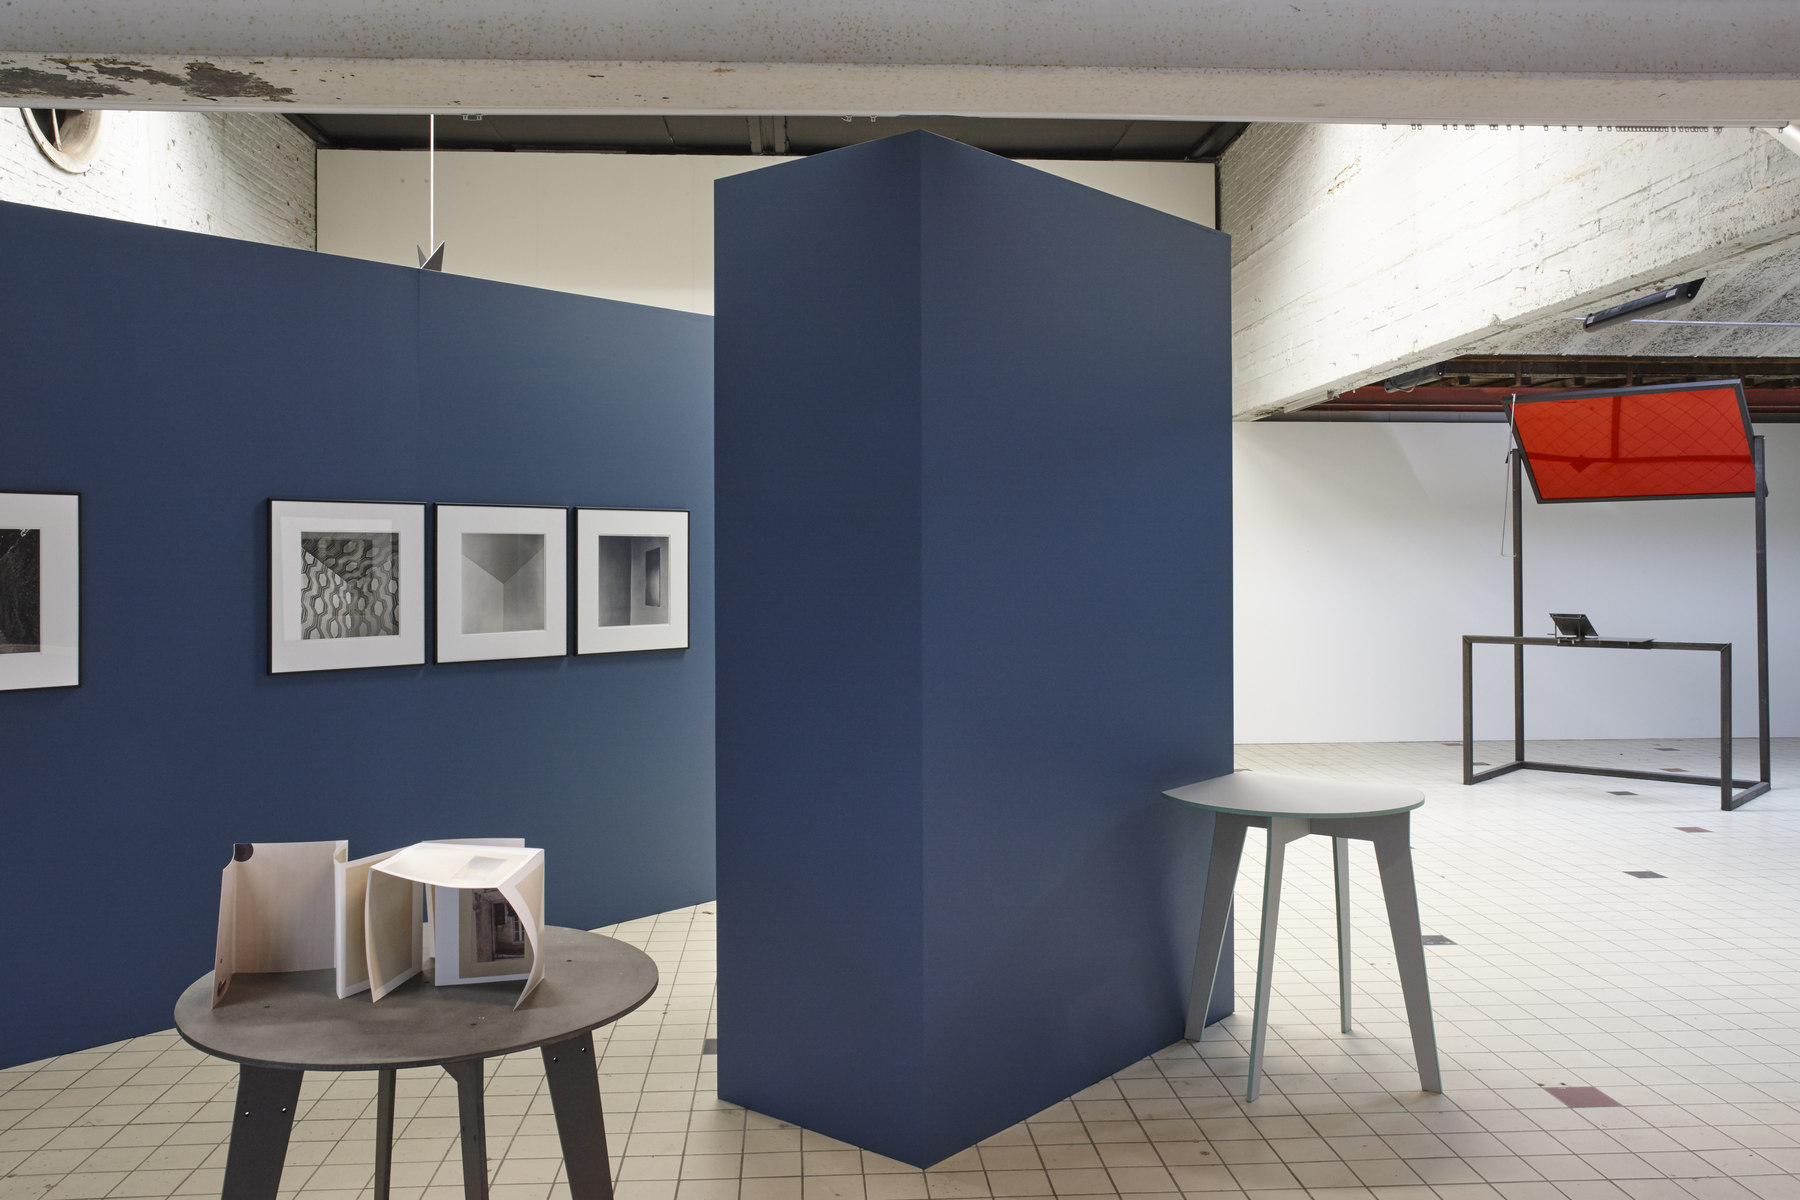 'The Corner Show', installation view, Extra City Kunsthal, 2015 © Jan Kempenaers363